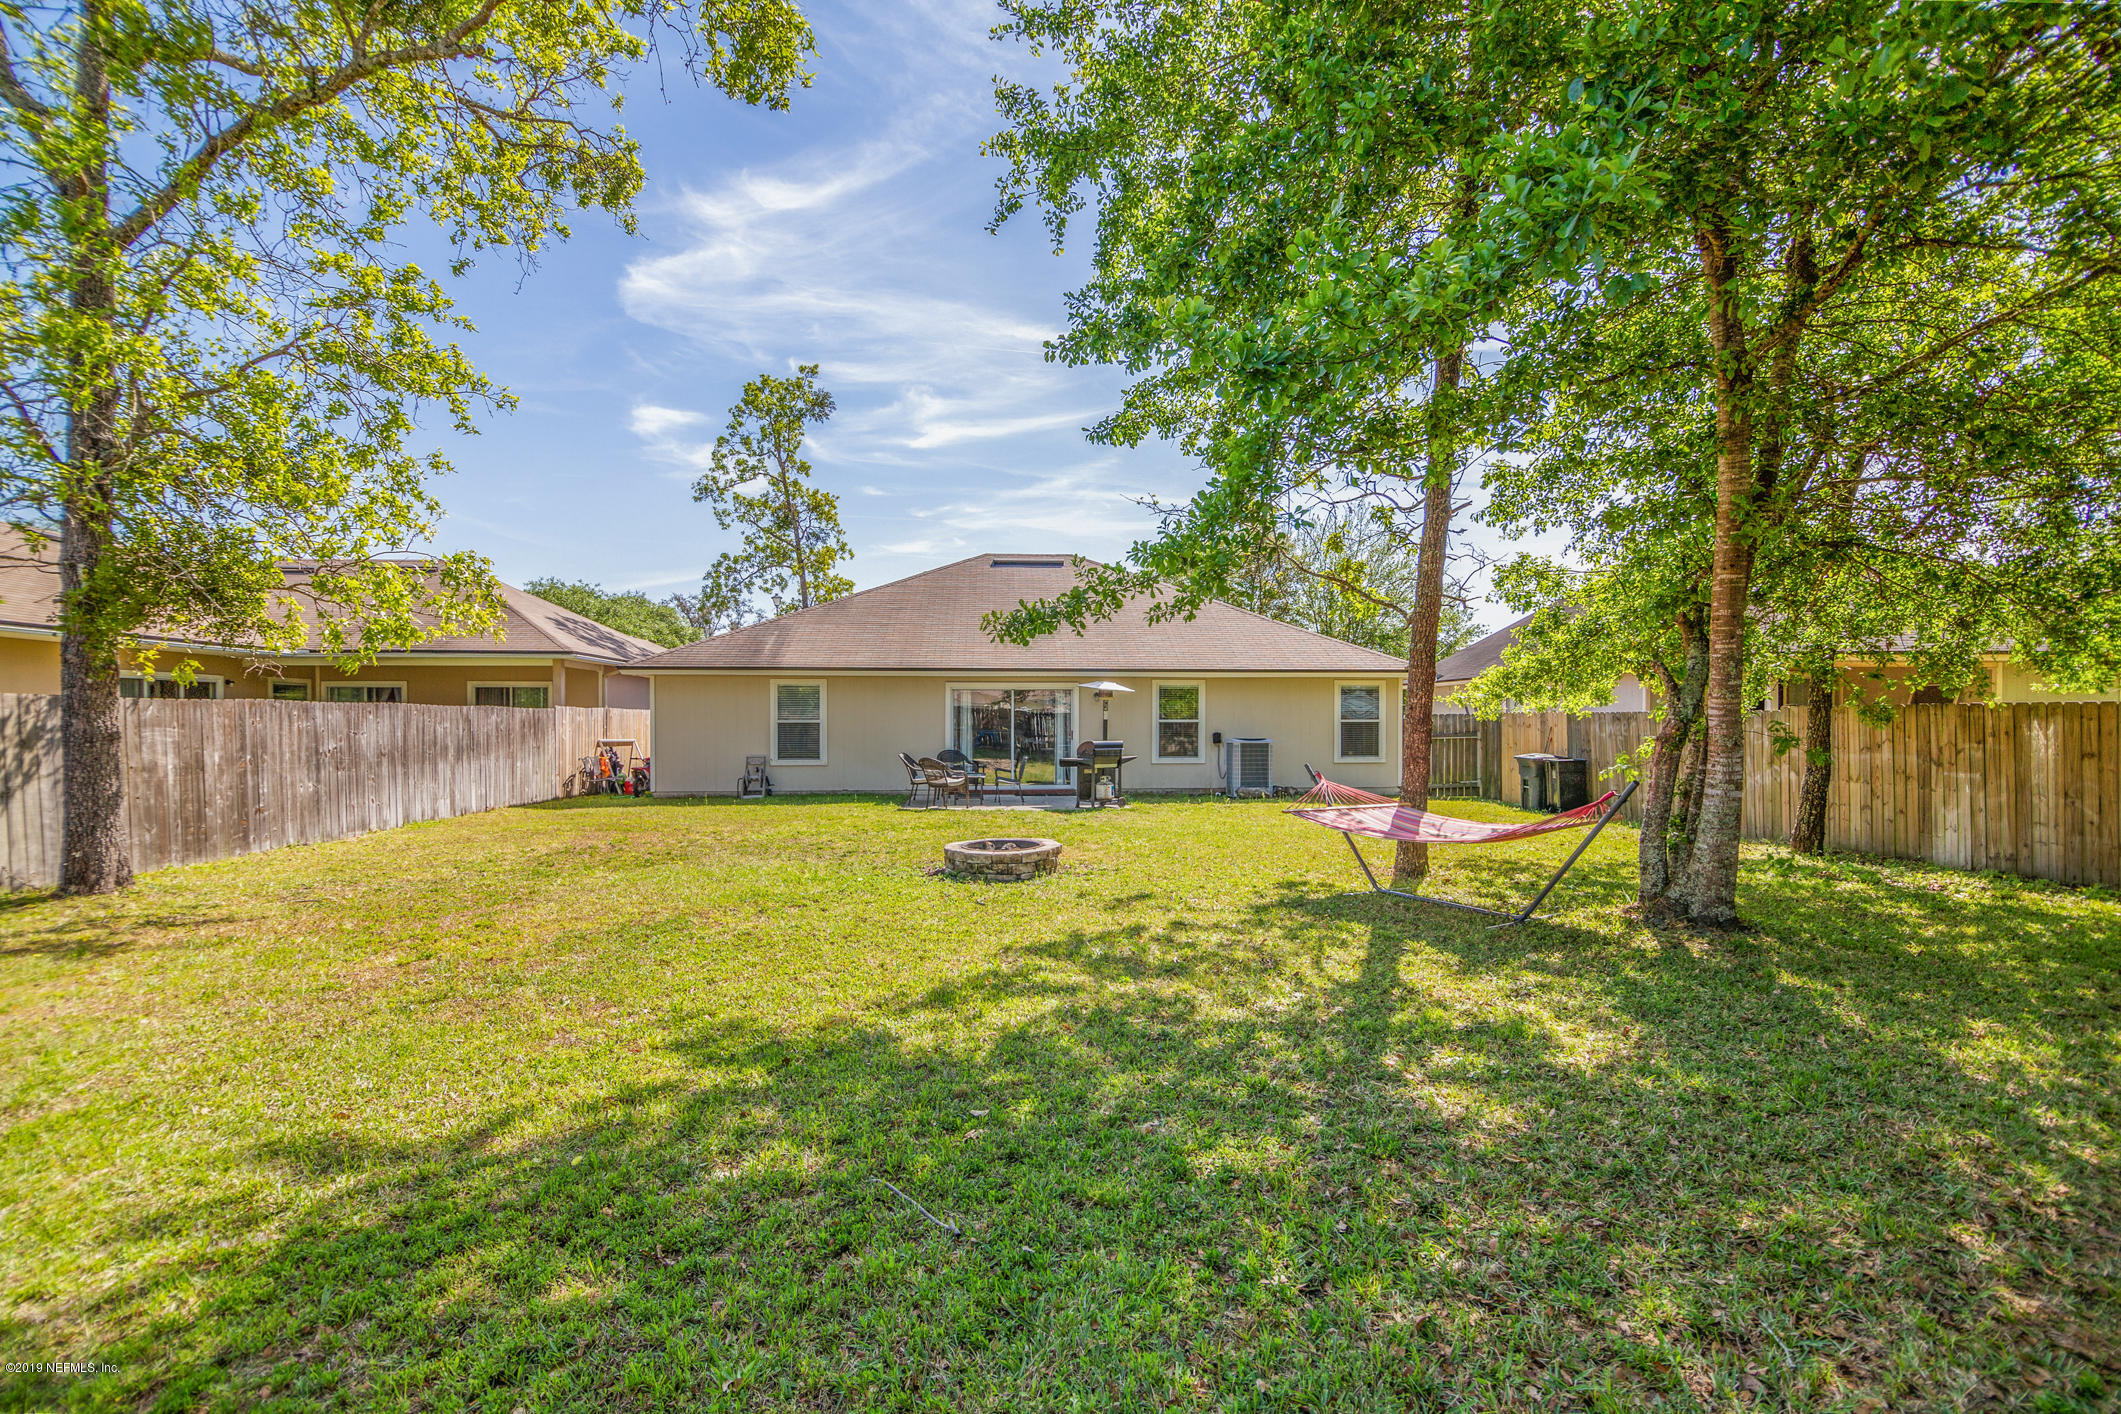 3012 SOUTHBANK, GREEN COVE SPRINGS, FLORIDA 32043, 4 Bedrooms Bedrooms, ,2 BathroomsBathrooms,Residential - single family,For sale,SOUTHBANK,988268